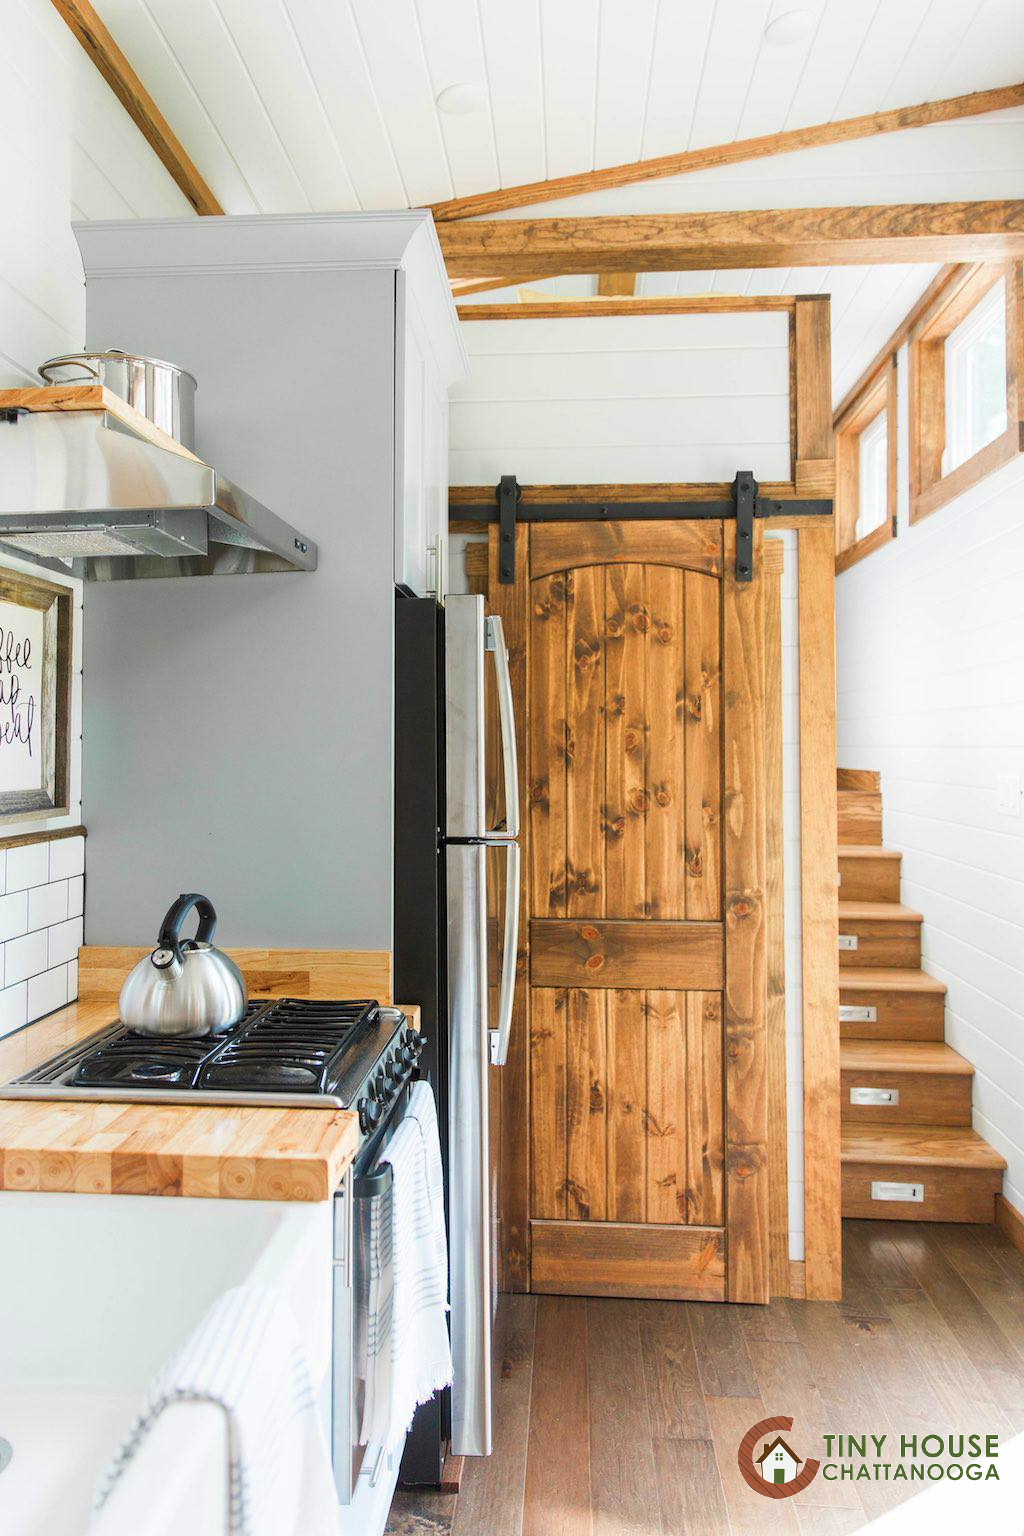 Tiny Home Designs Plans: TINY HOUSE TOWN: The Lookout V3 From Tiny House Chattanooga